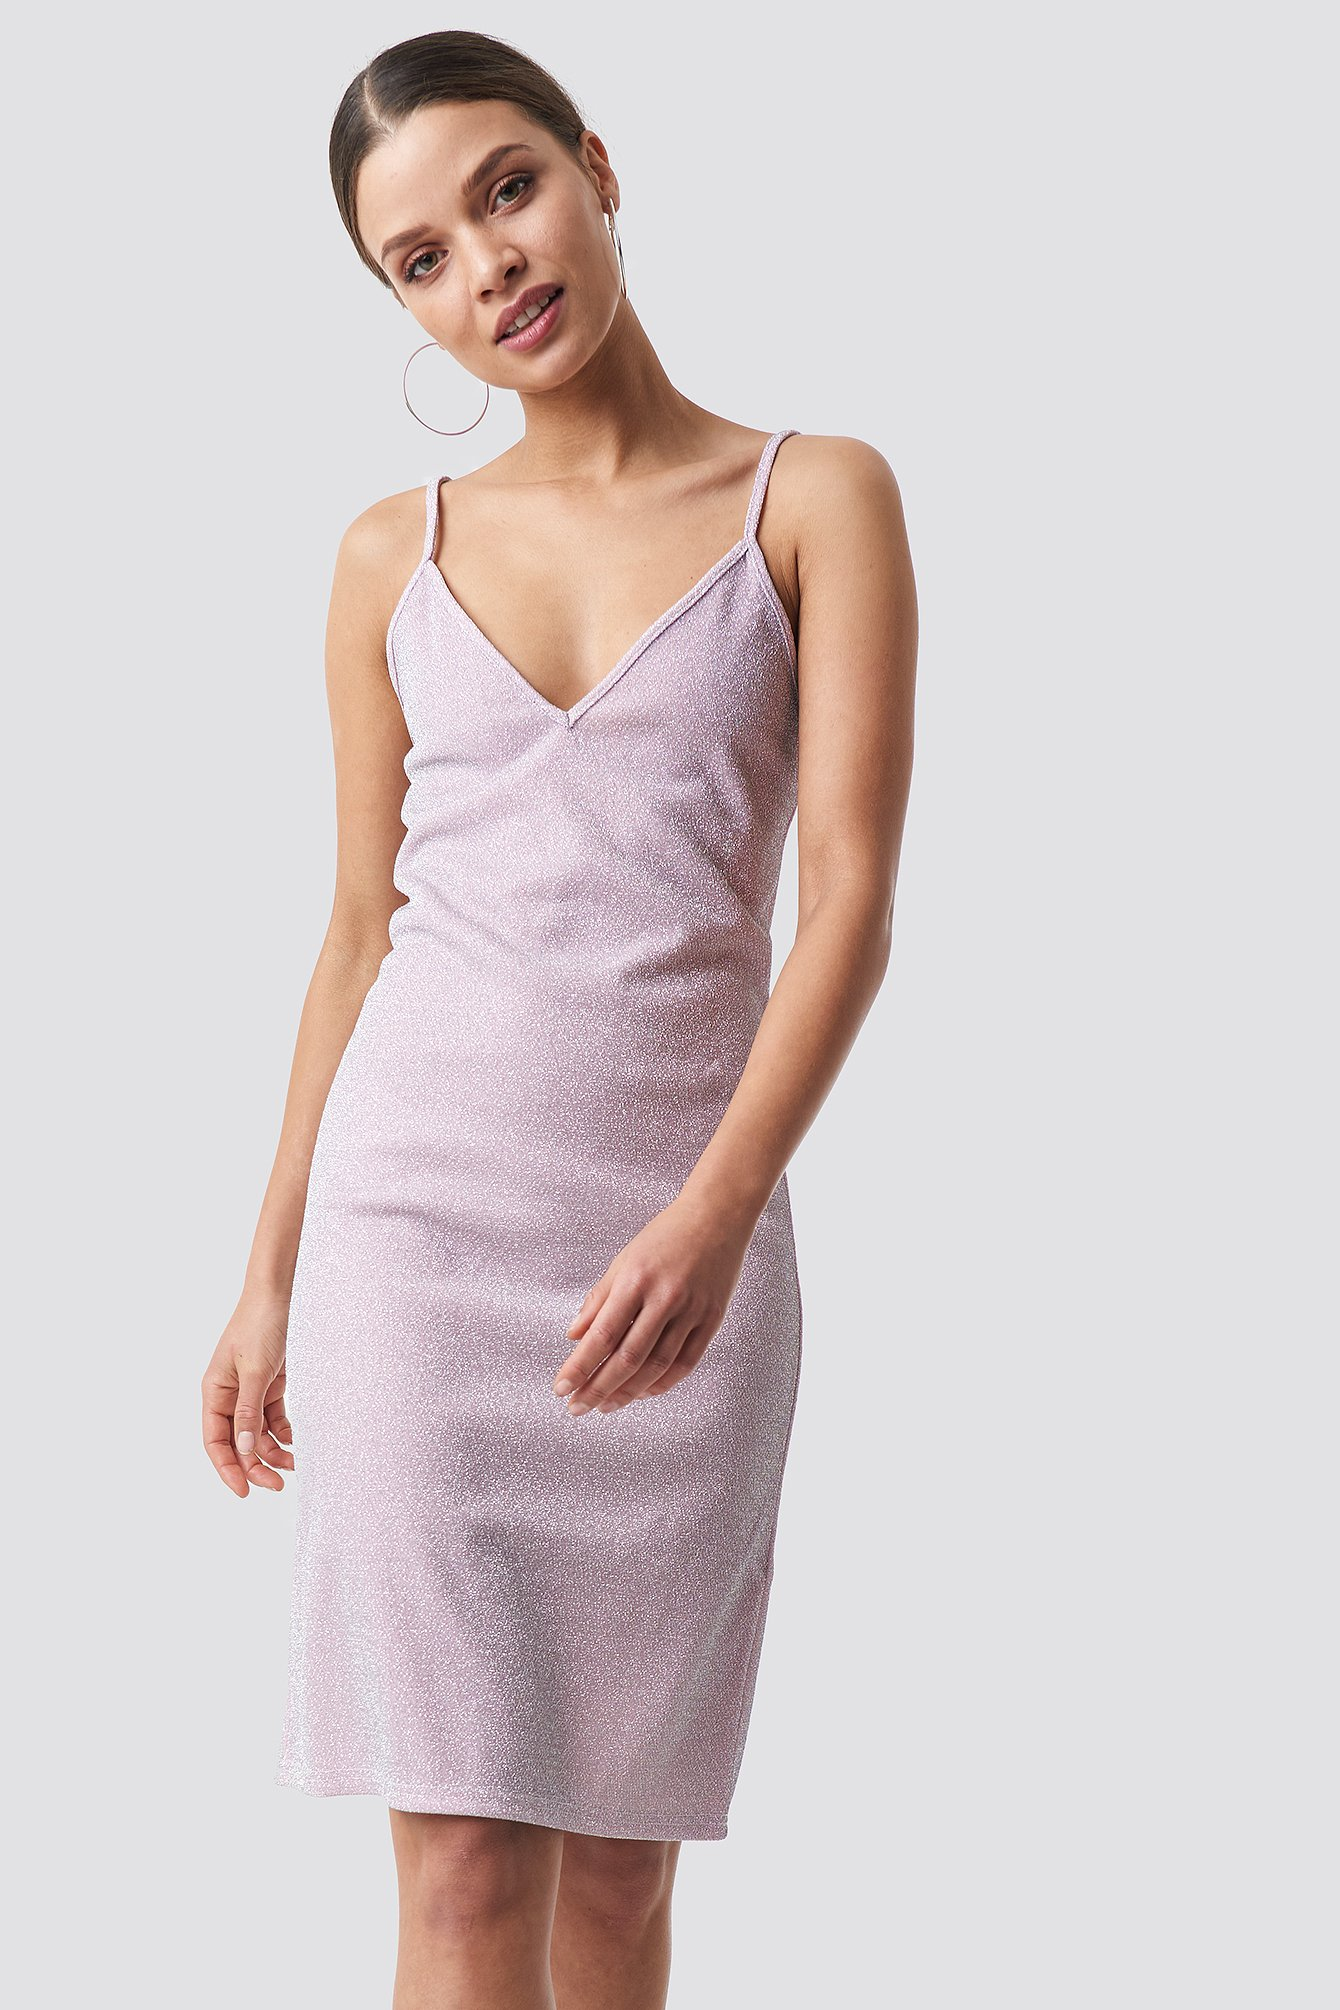 Glittery Slip Dress Pink NA-KD Party